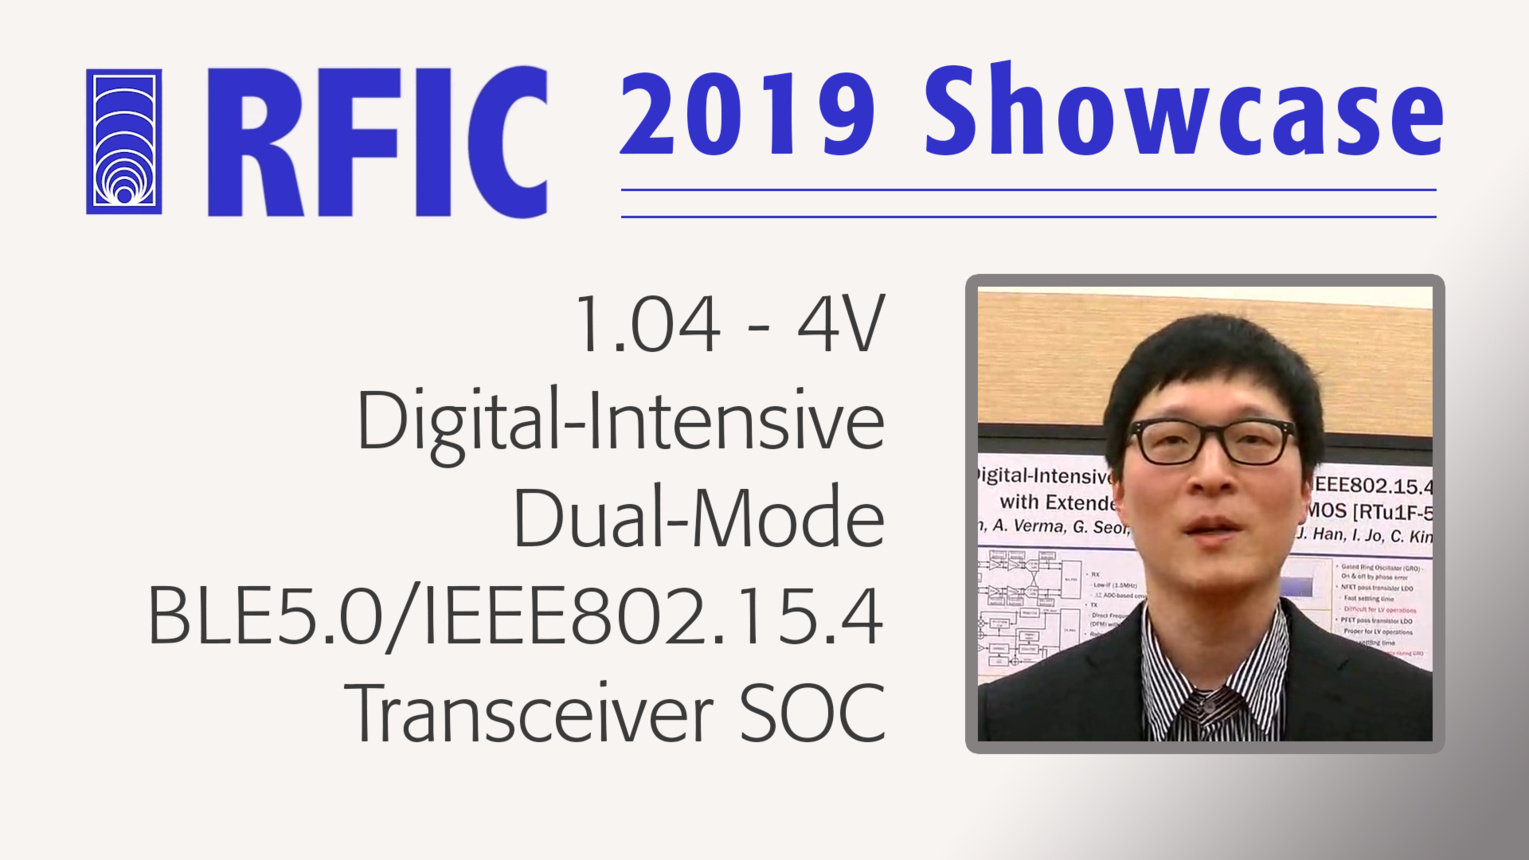 1.04 - 4V Digital-Intensive Dual-Mode BLE5.0/IEEE802.15.4 Transceiver SOC - N.S. Kim - RFIC 2019 Showcase